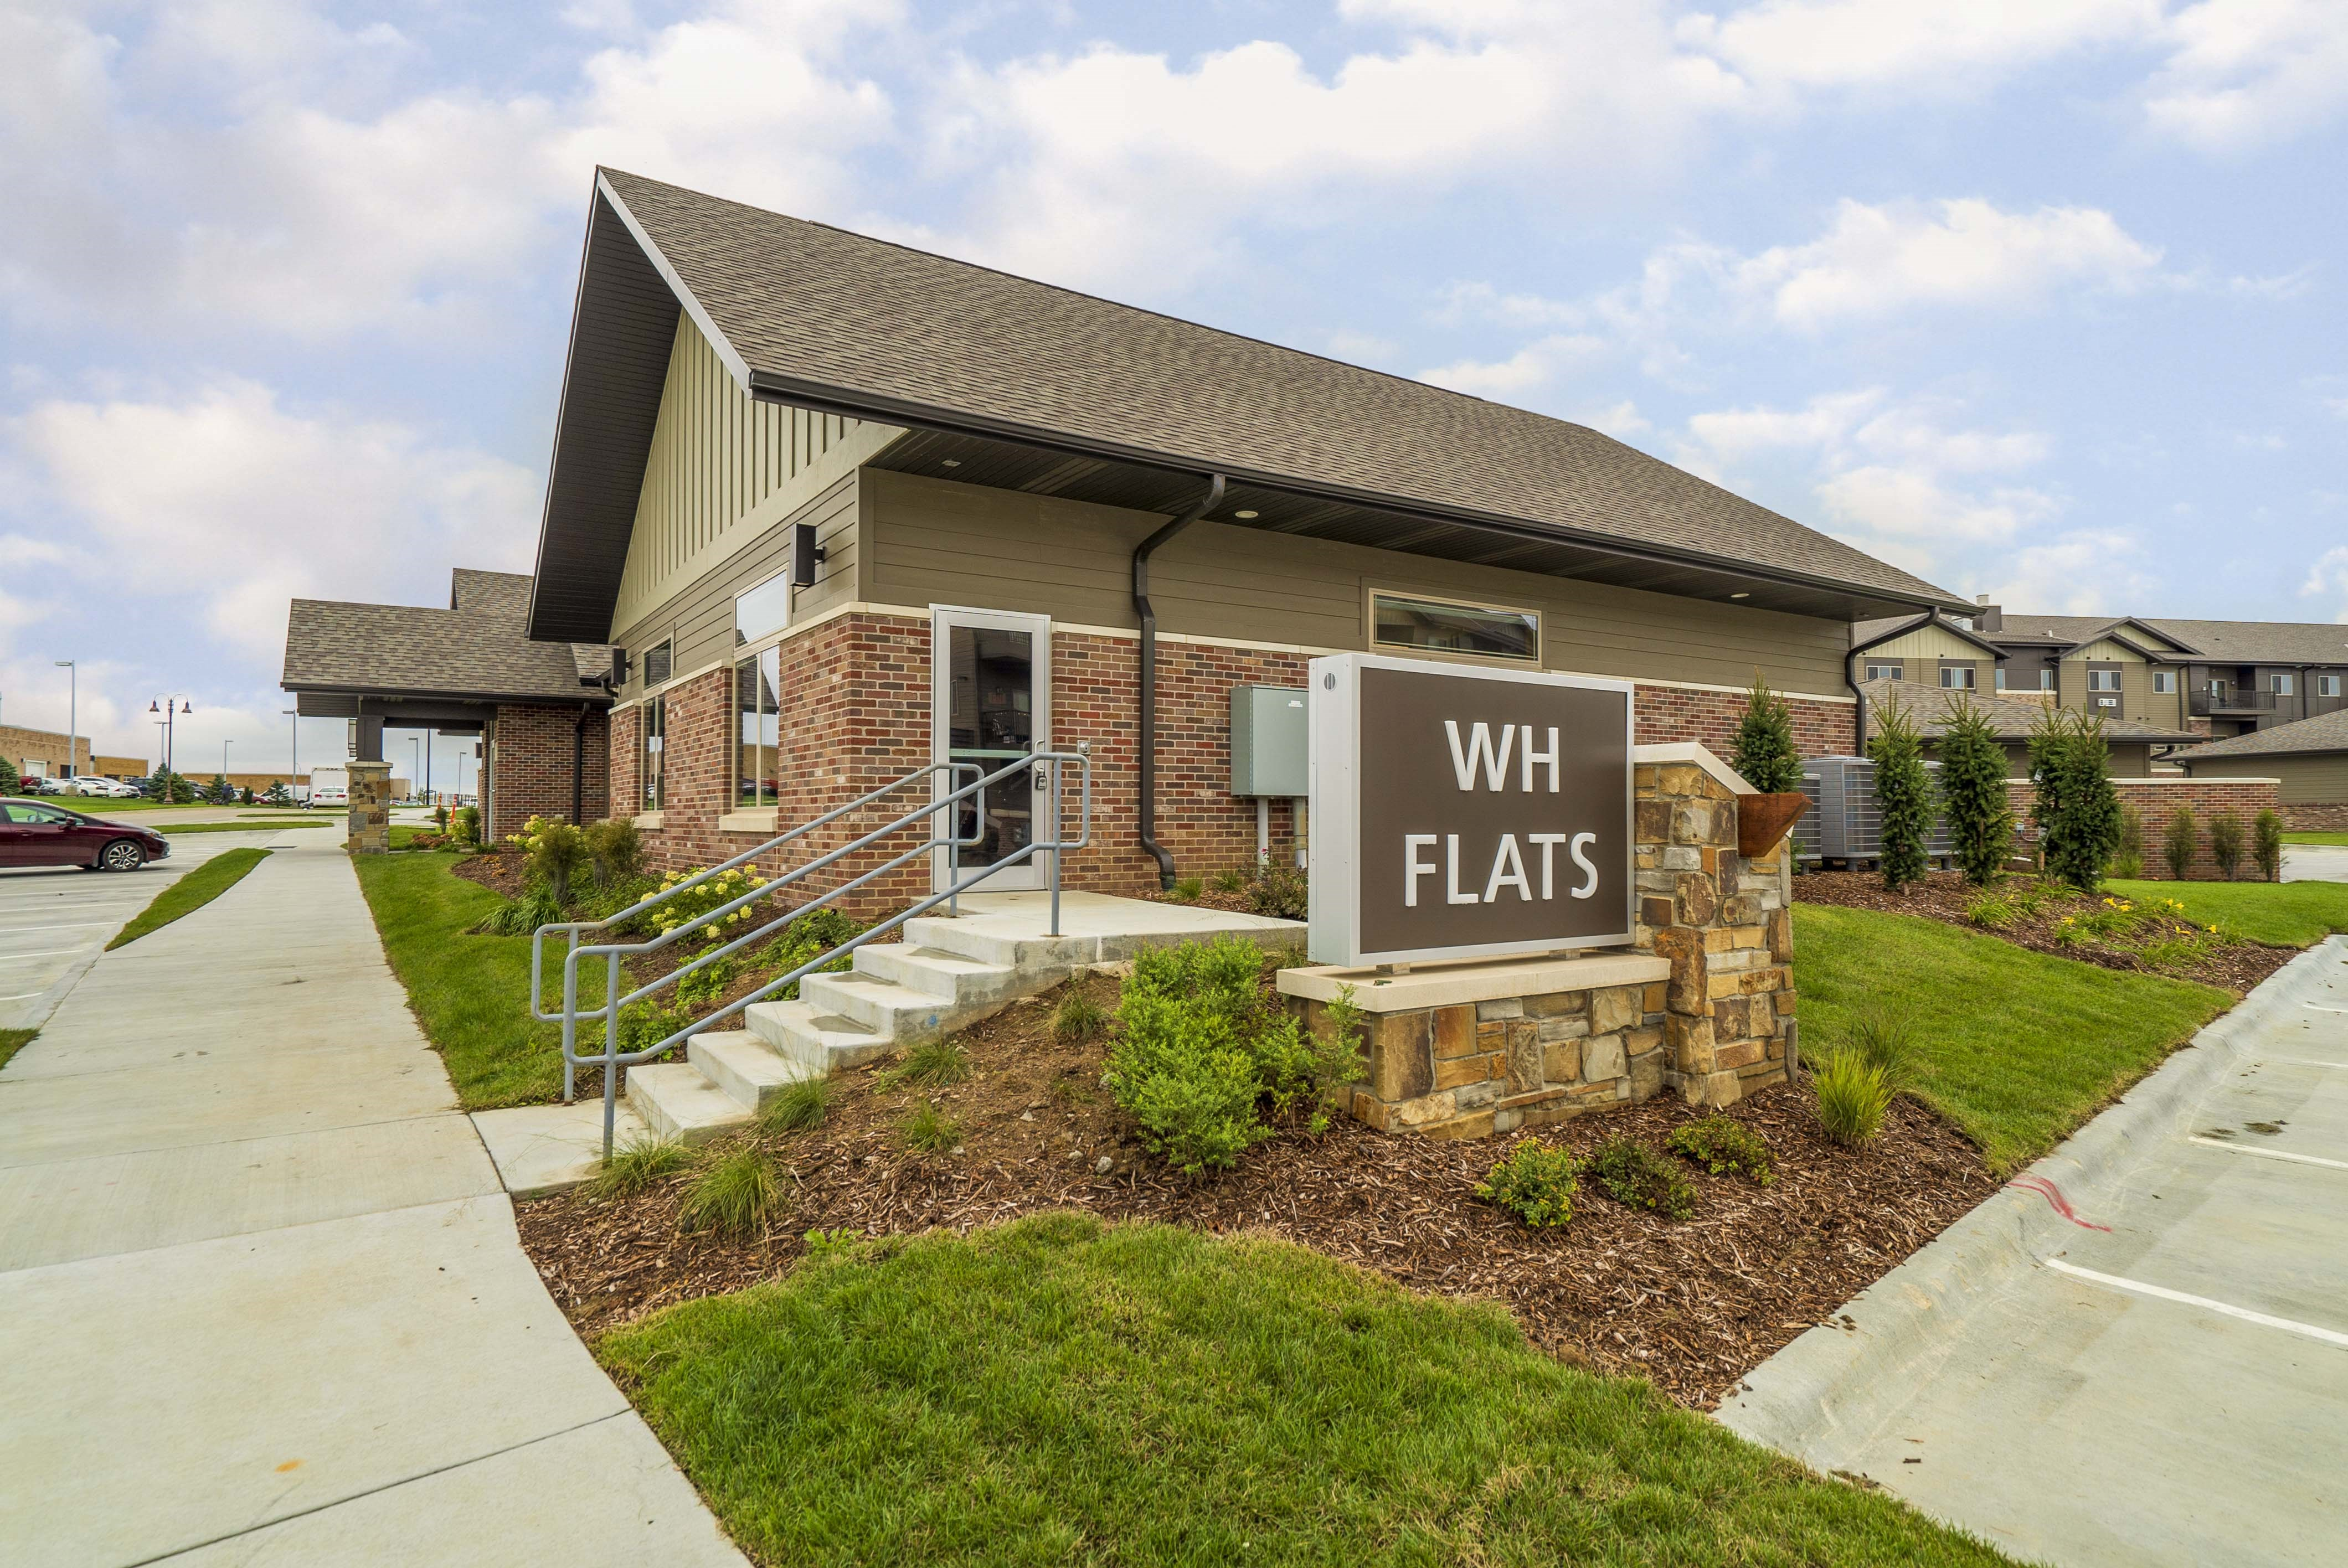 Exterior view of WH Flats new luxury apartments in south Lincoln NE 68516